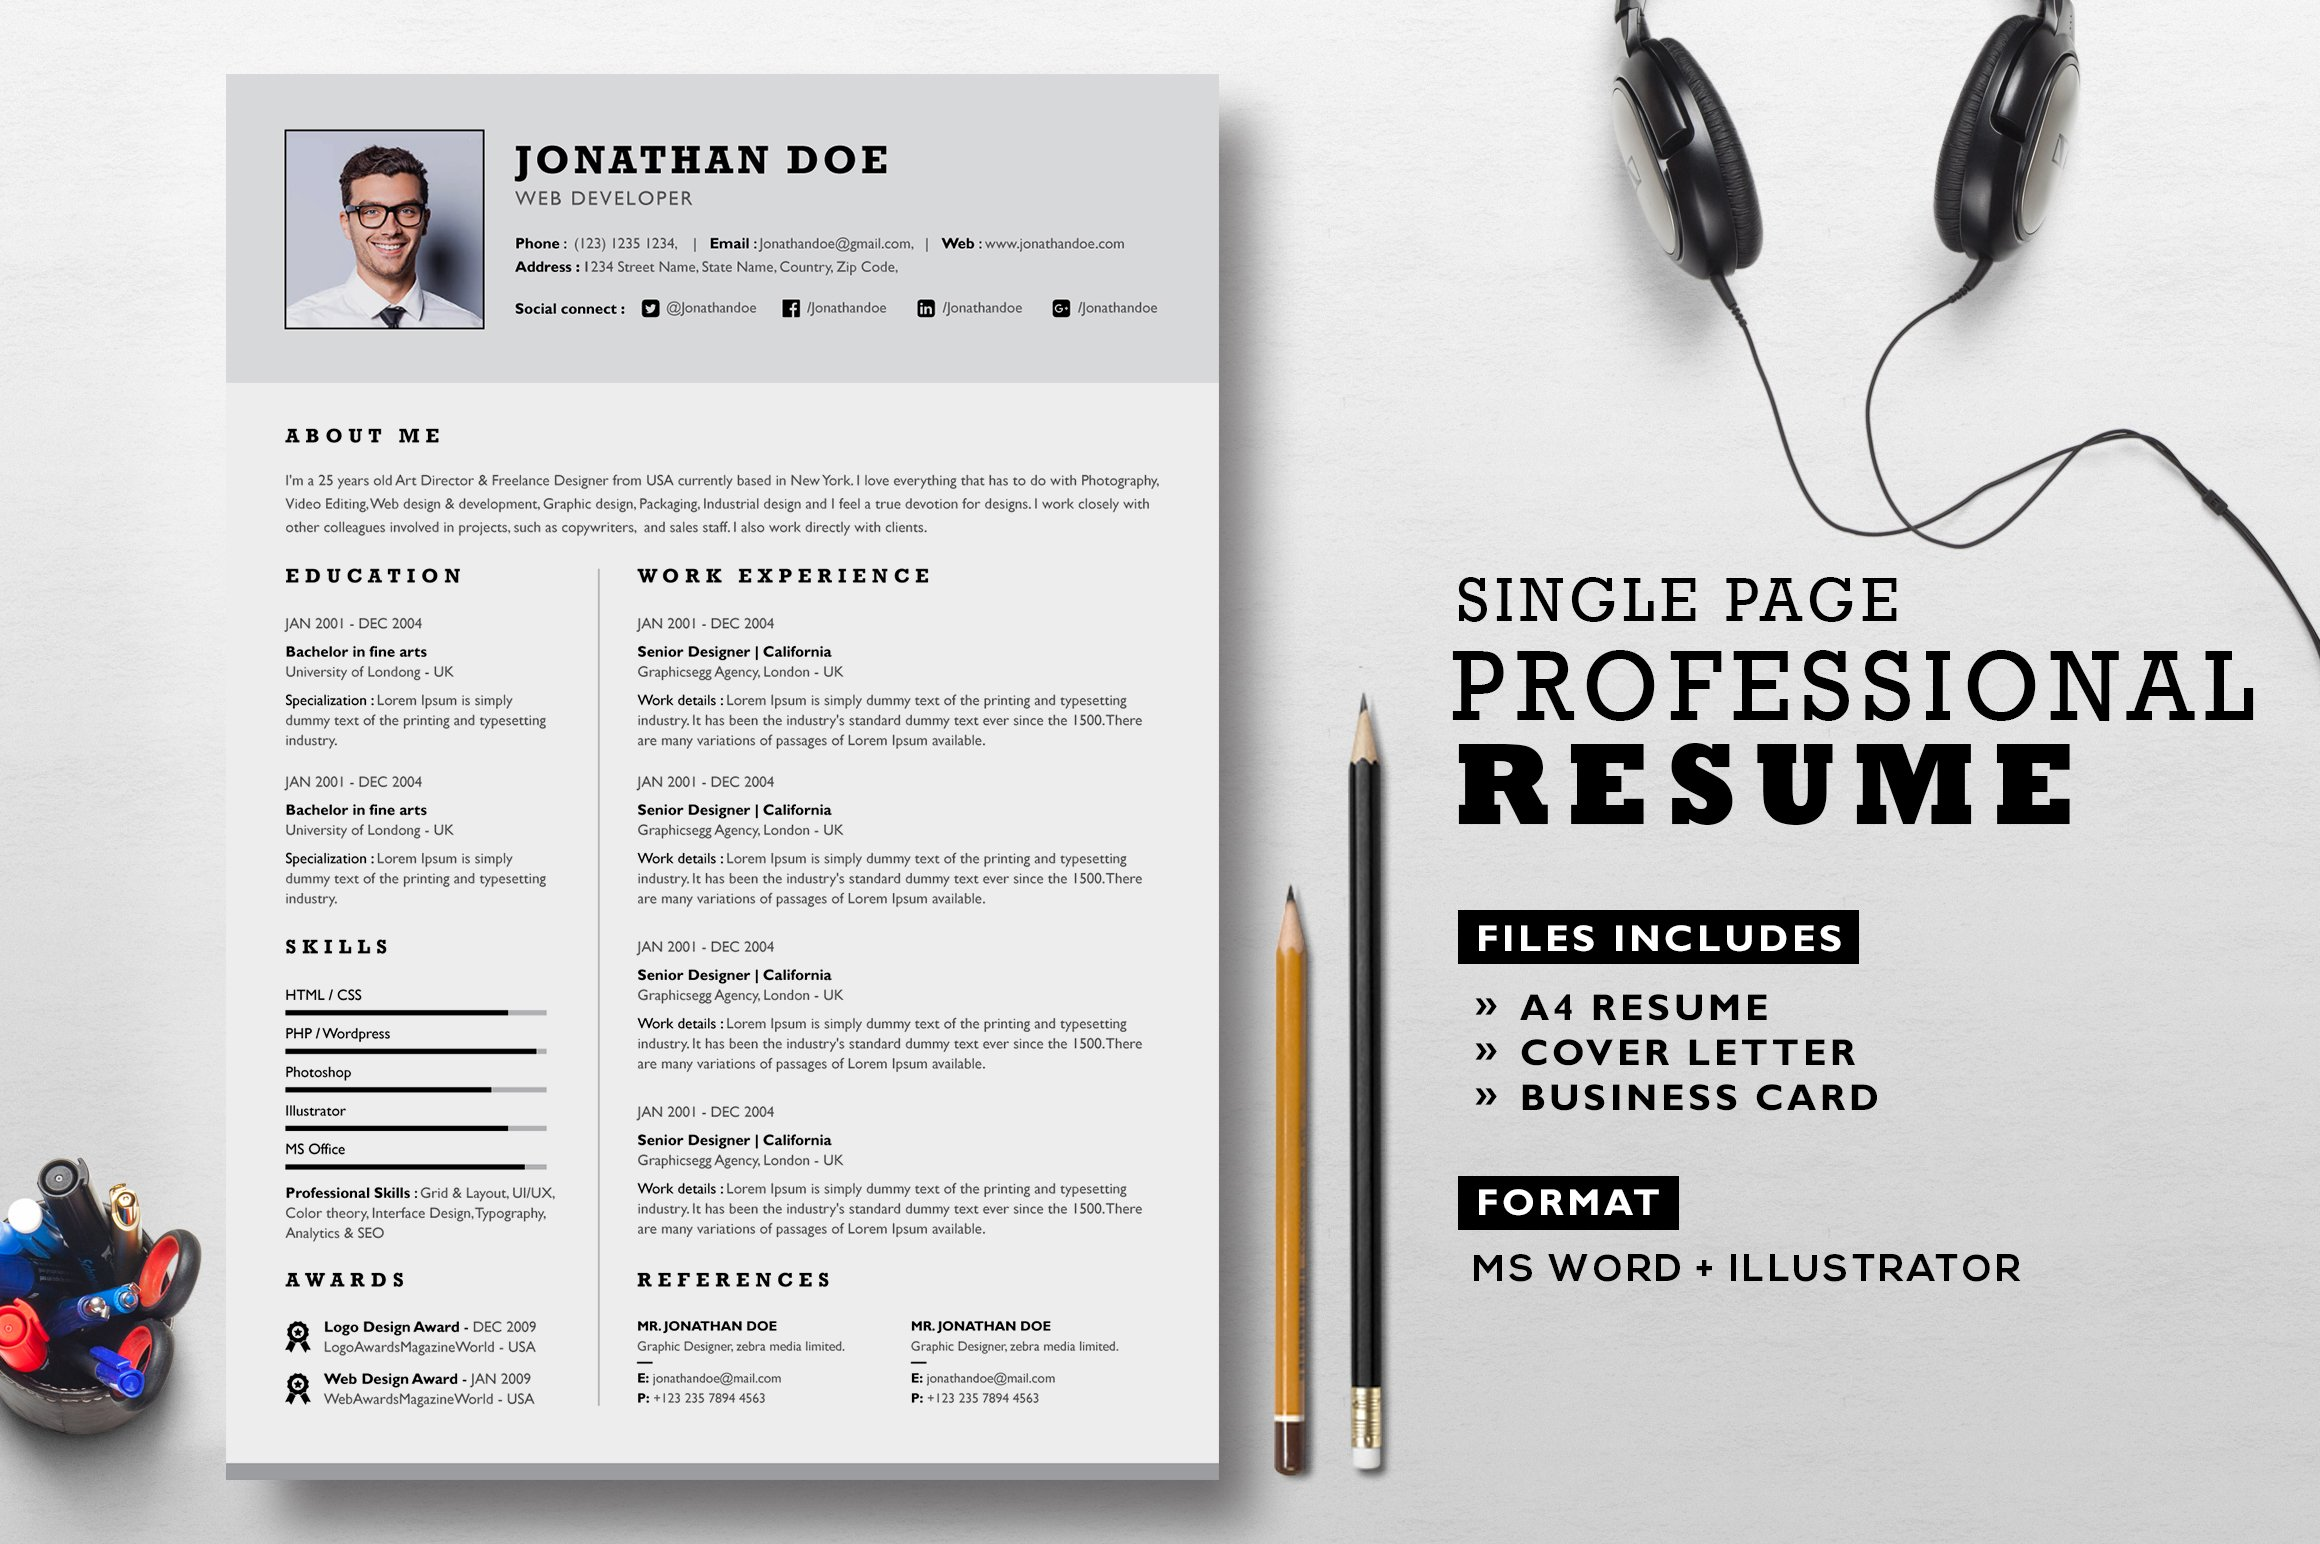 graphicsegg creative market professional resume set